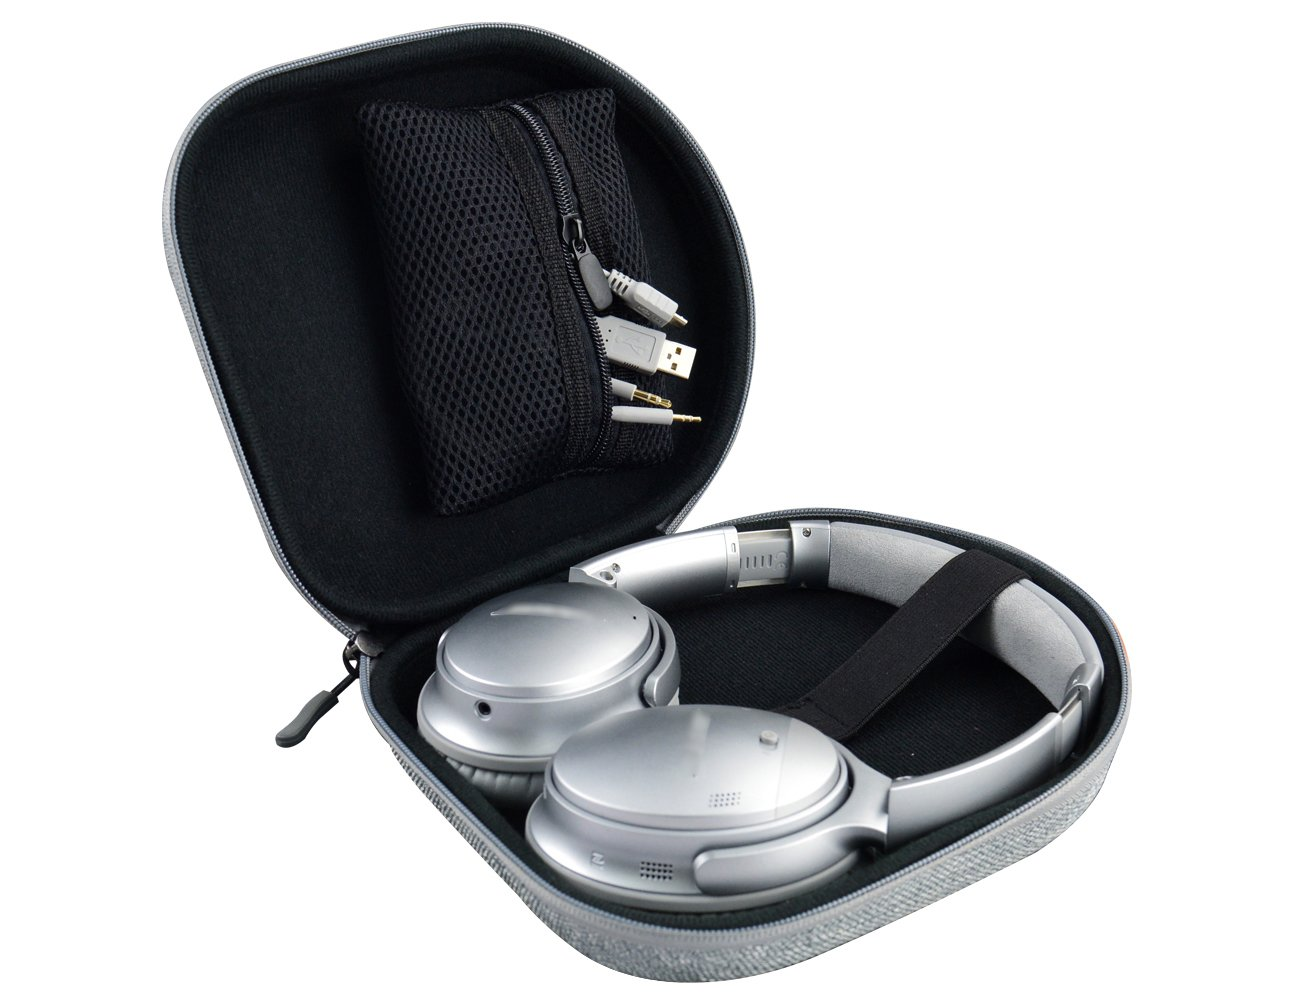 Headphone Case For Beoplay H2 H4 H6 H7 H8 H9 Bri Bang Ampamp Olufsen Premium Over Ear Headphones 2nd Gen Natural Parrot Zik 10 20 30 Ath M50x Kef M500 Sony Mdrxb650 Mdrxb950 Mdrzx770 Mdr10rnc